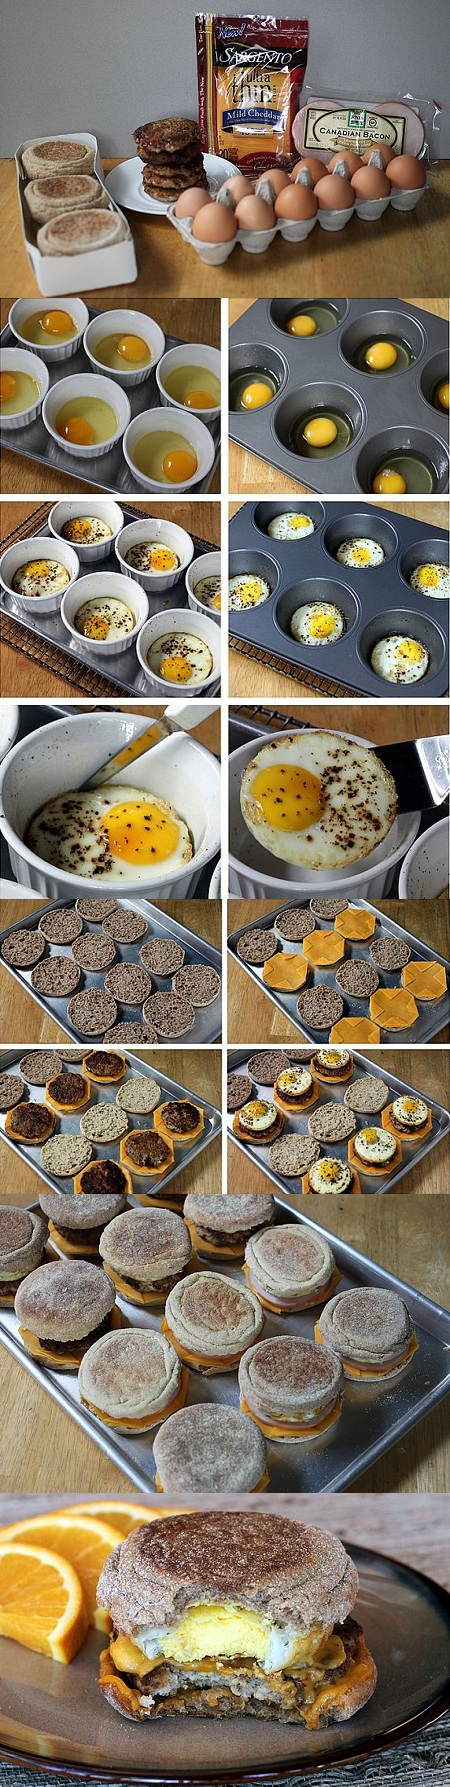 Healthy-Egg-McMuffin-Copycats